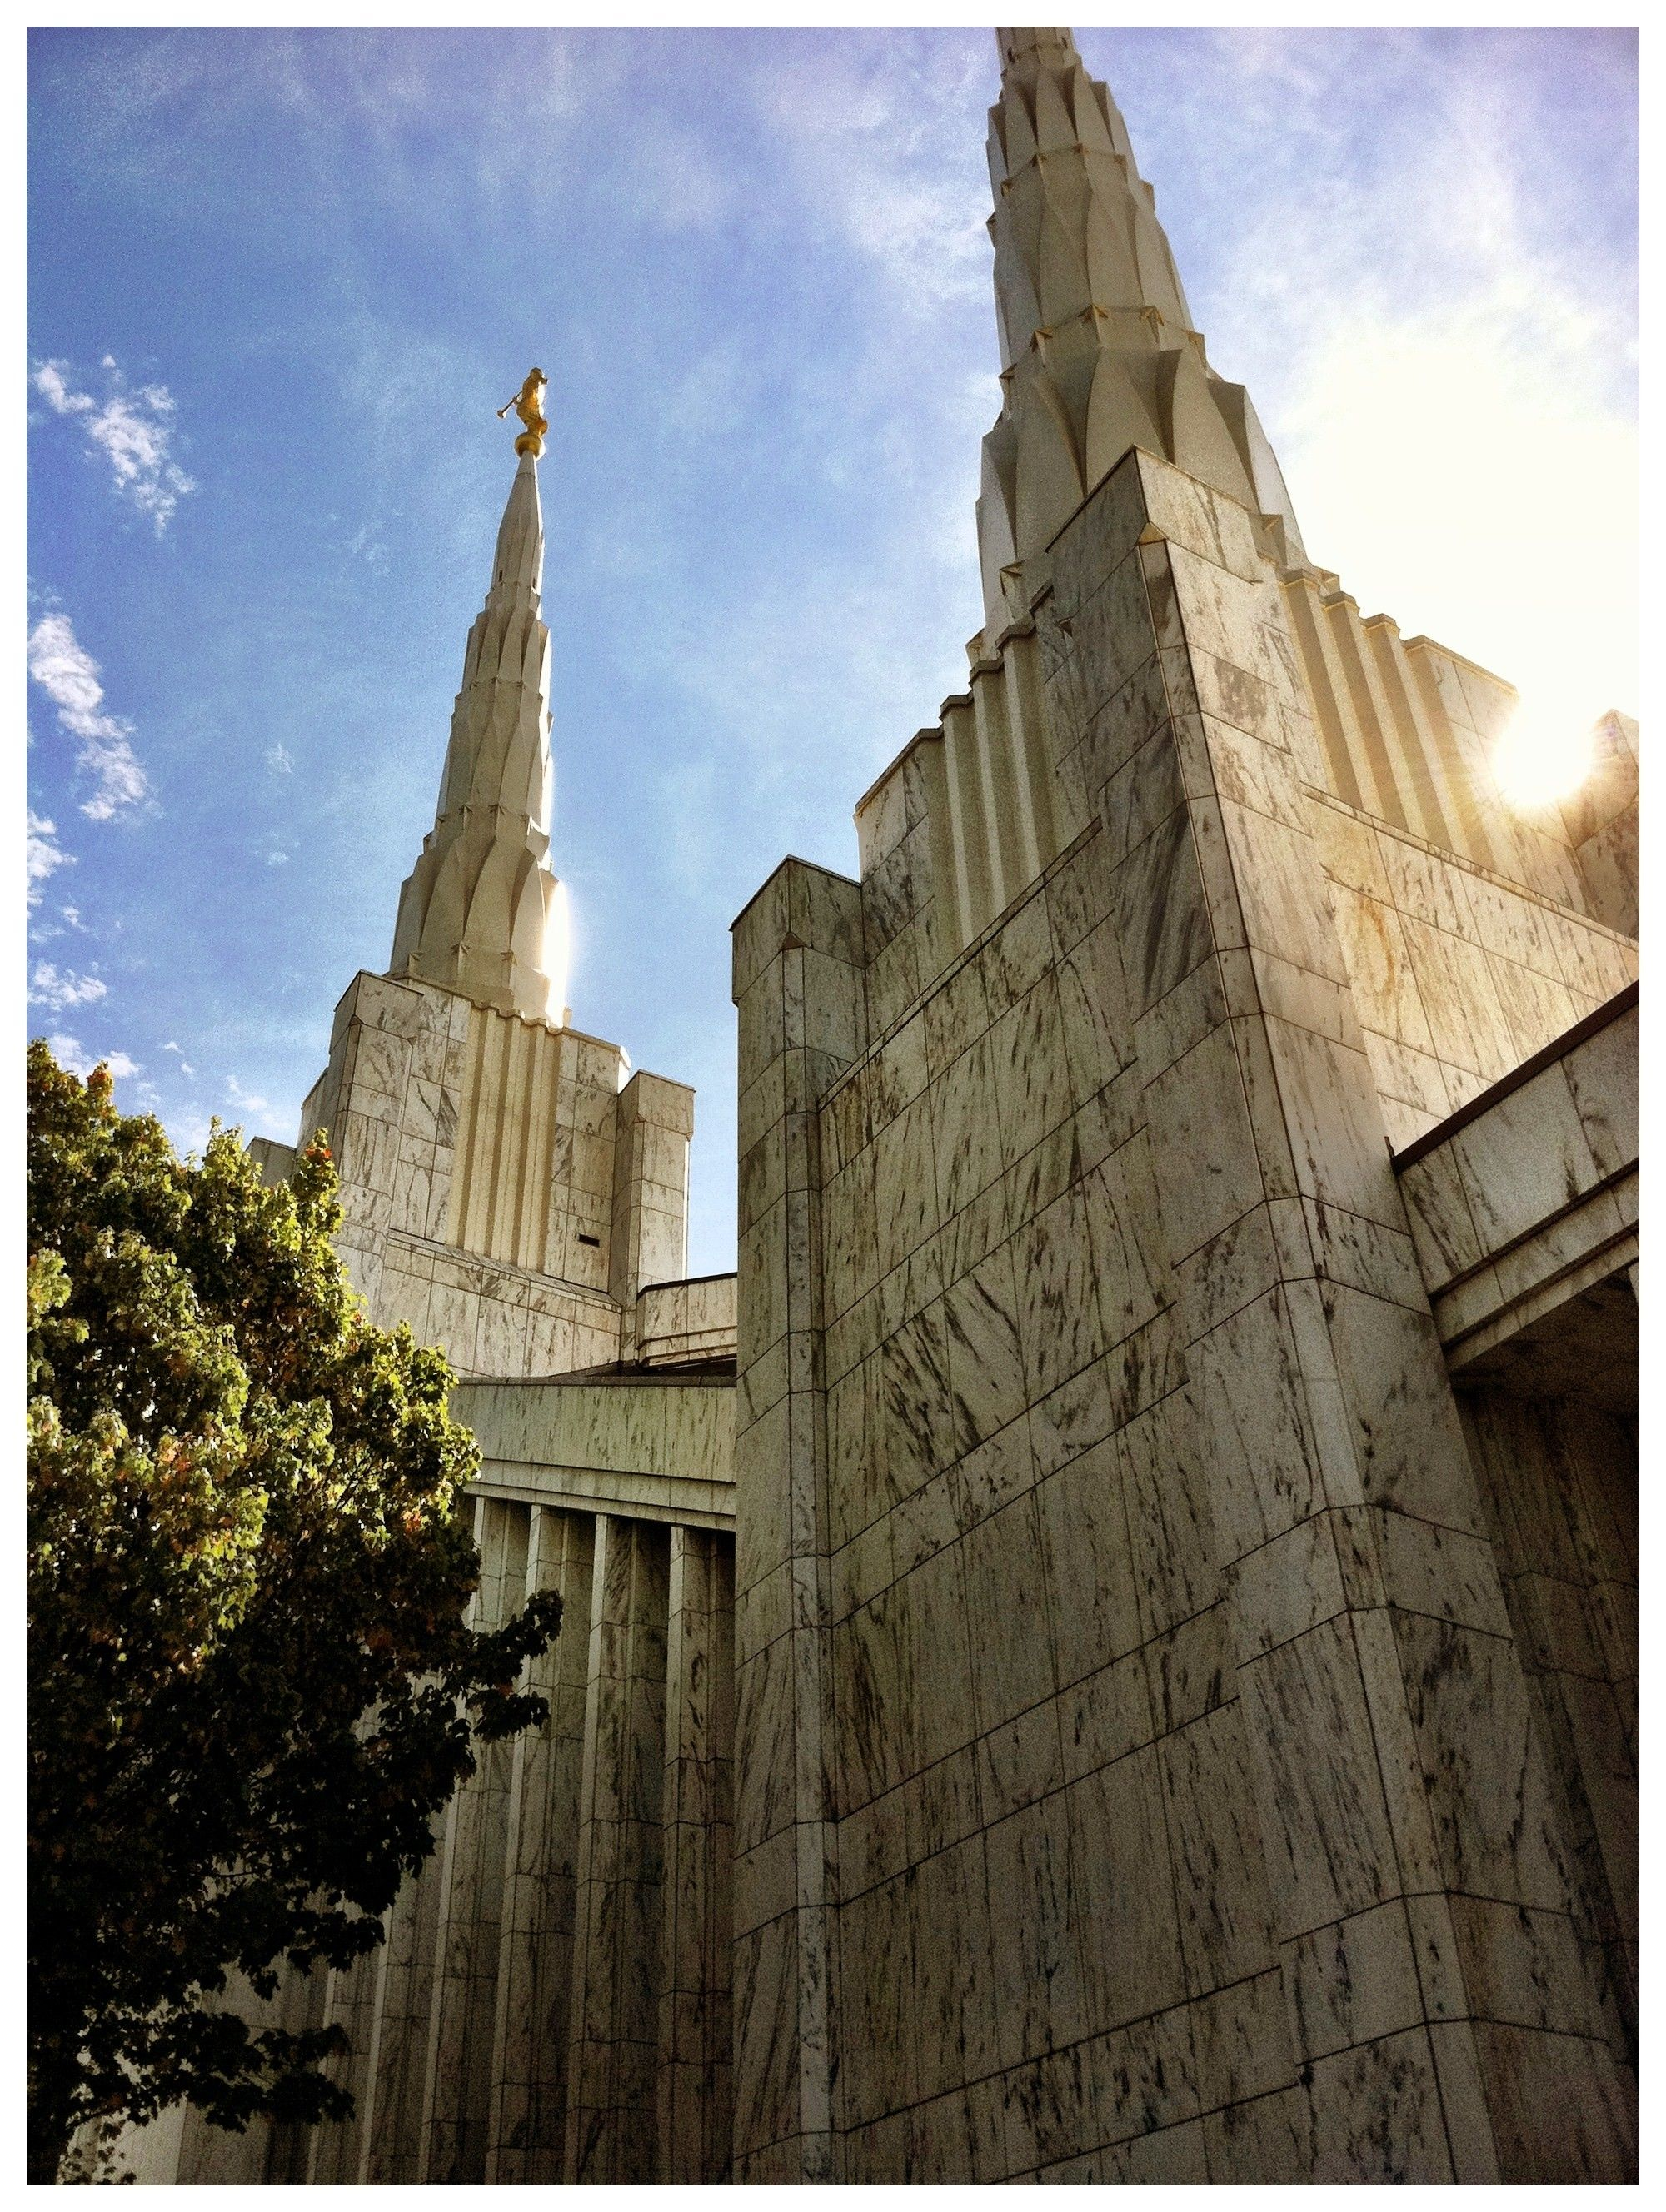 The Portland Oregon Temple spires, including the exterior of the temple.